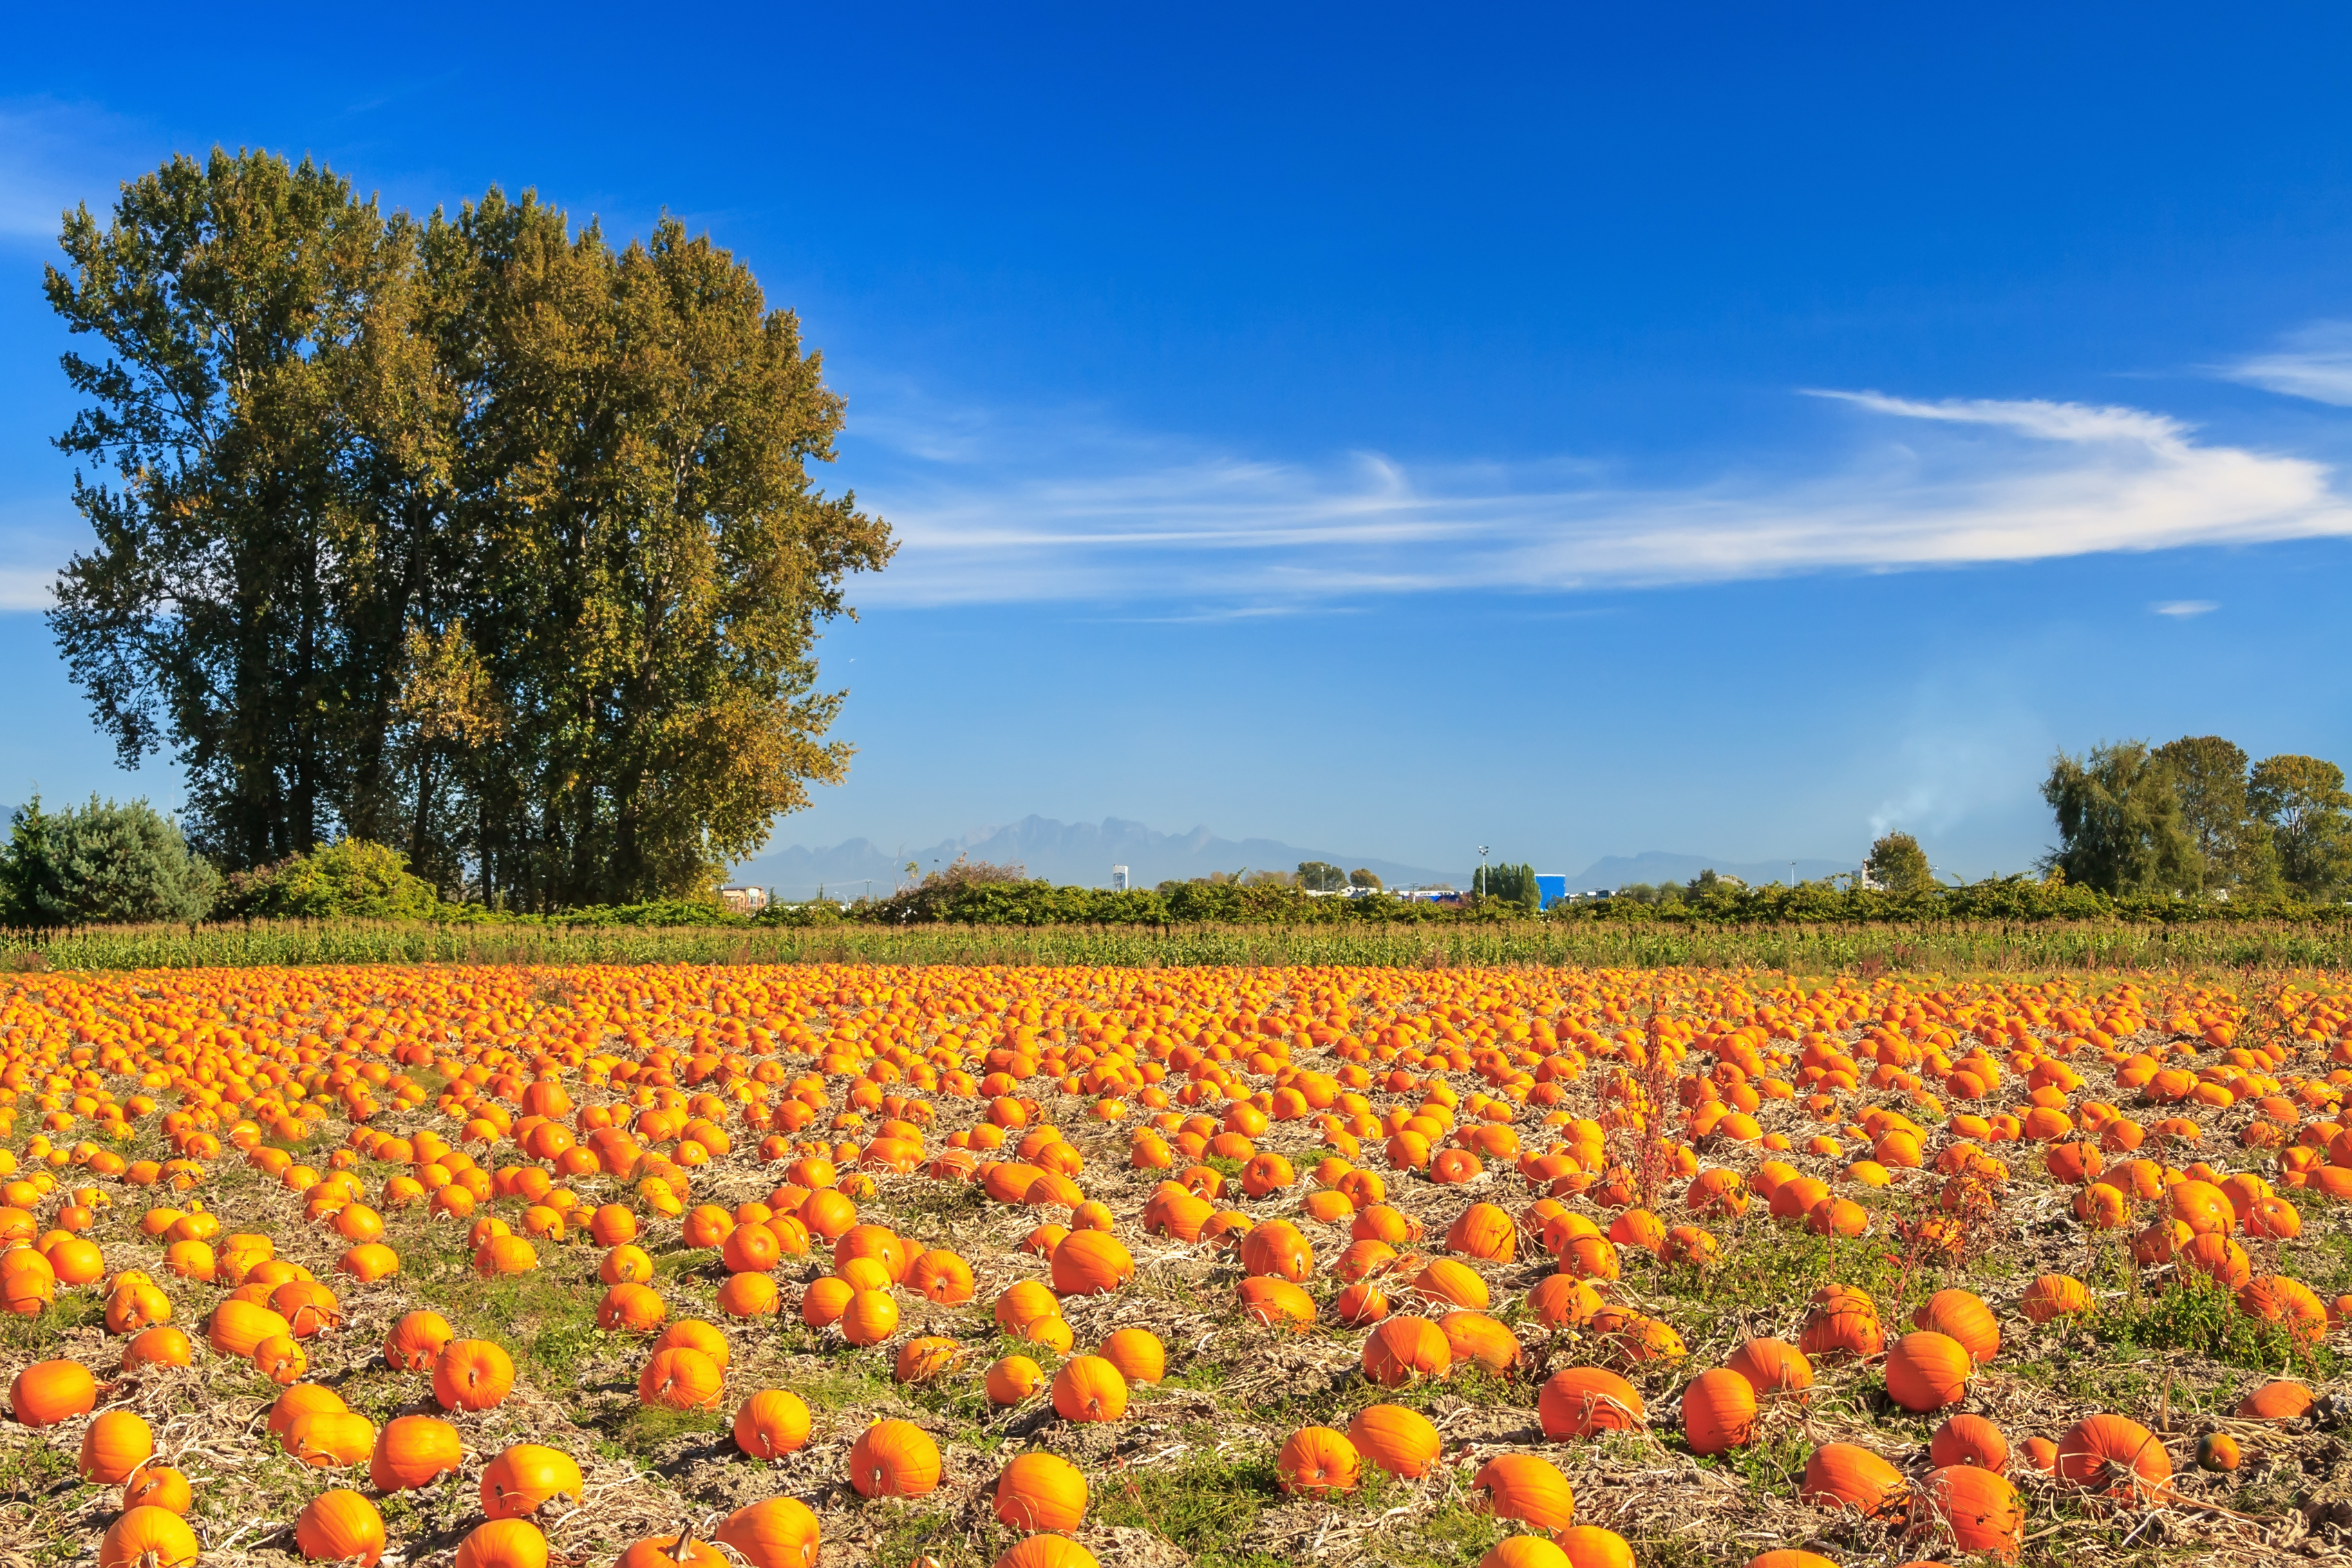 Brookfield pumpkins – pumpkin patch in frederick, md.